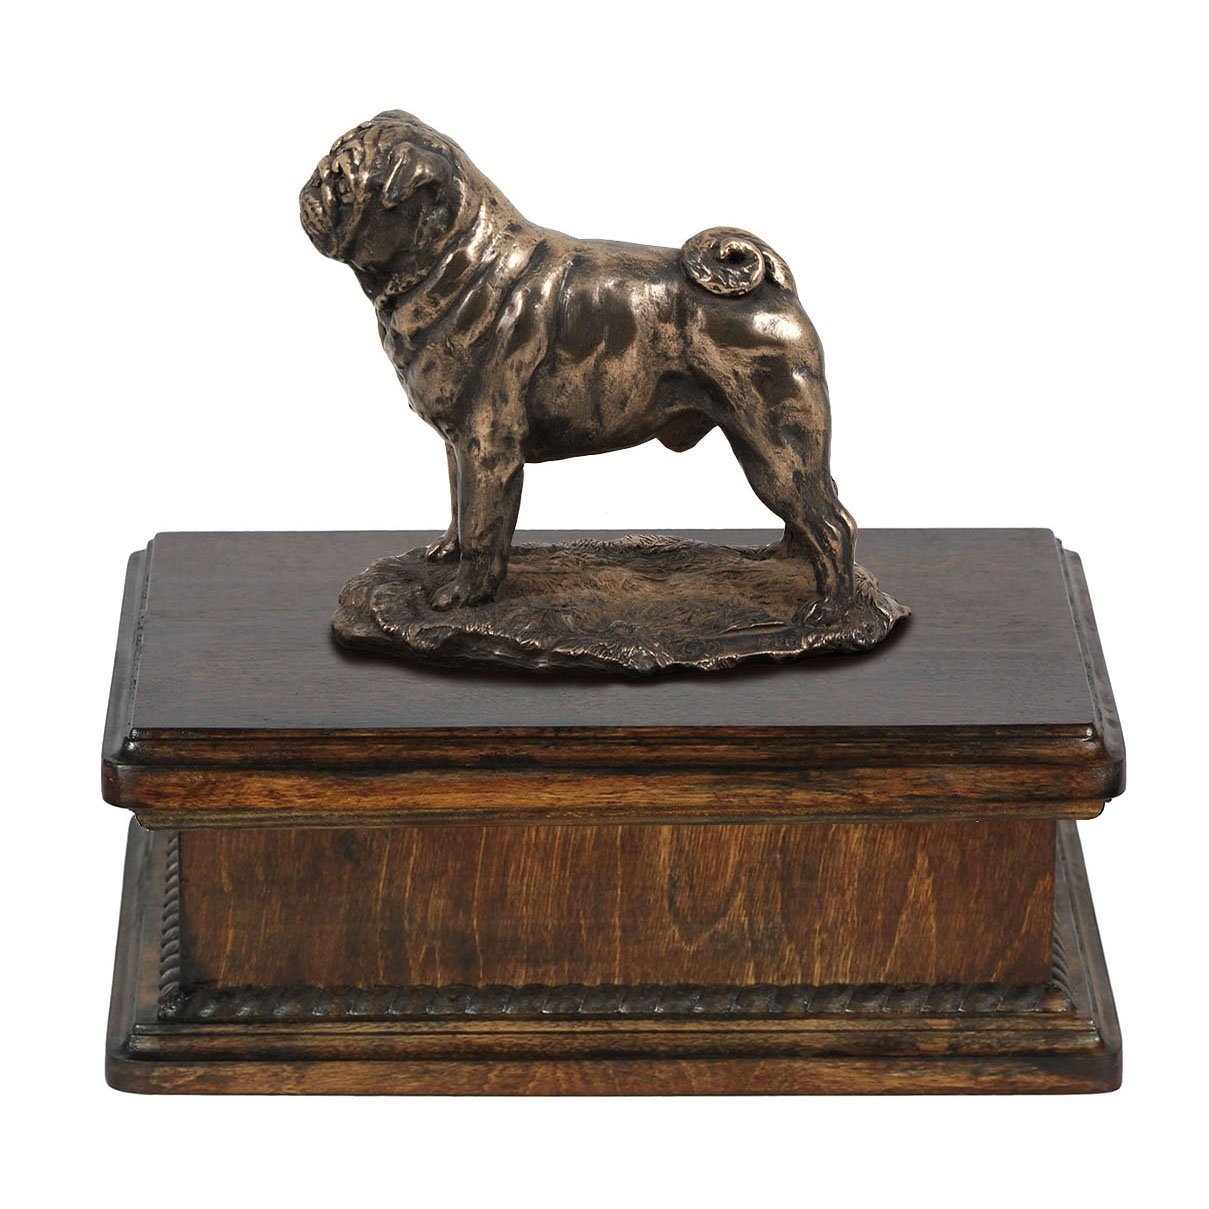 Pug, memorial, urn for dog's ashes, with dog statue, exclusive, ArtDog